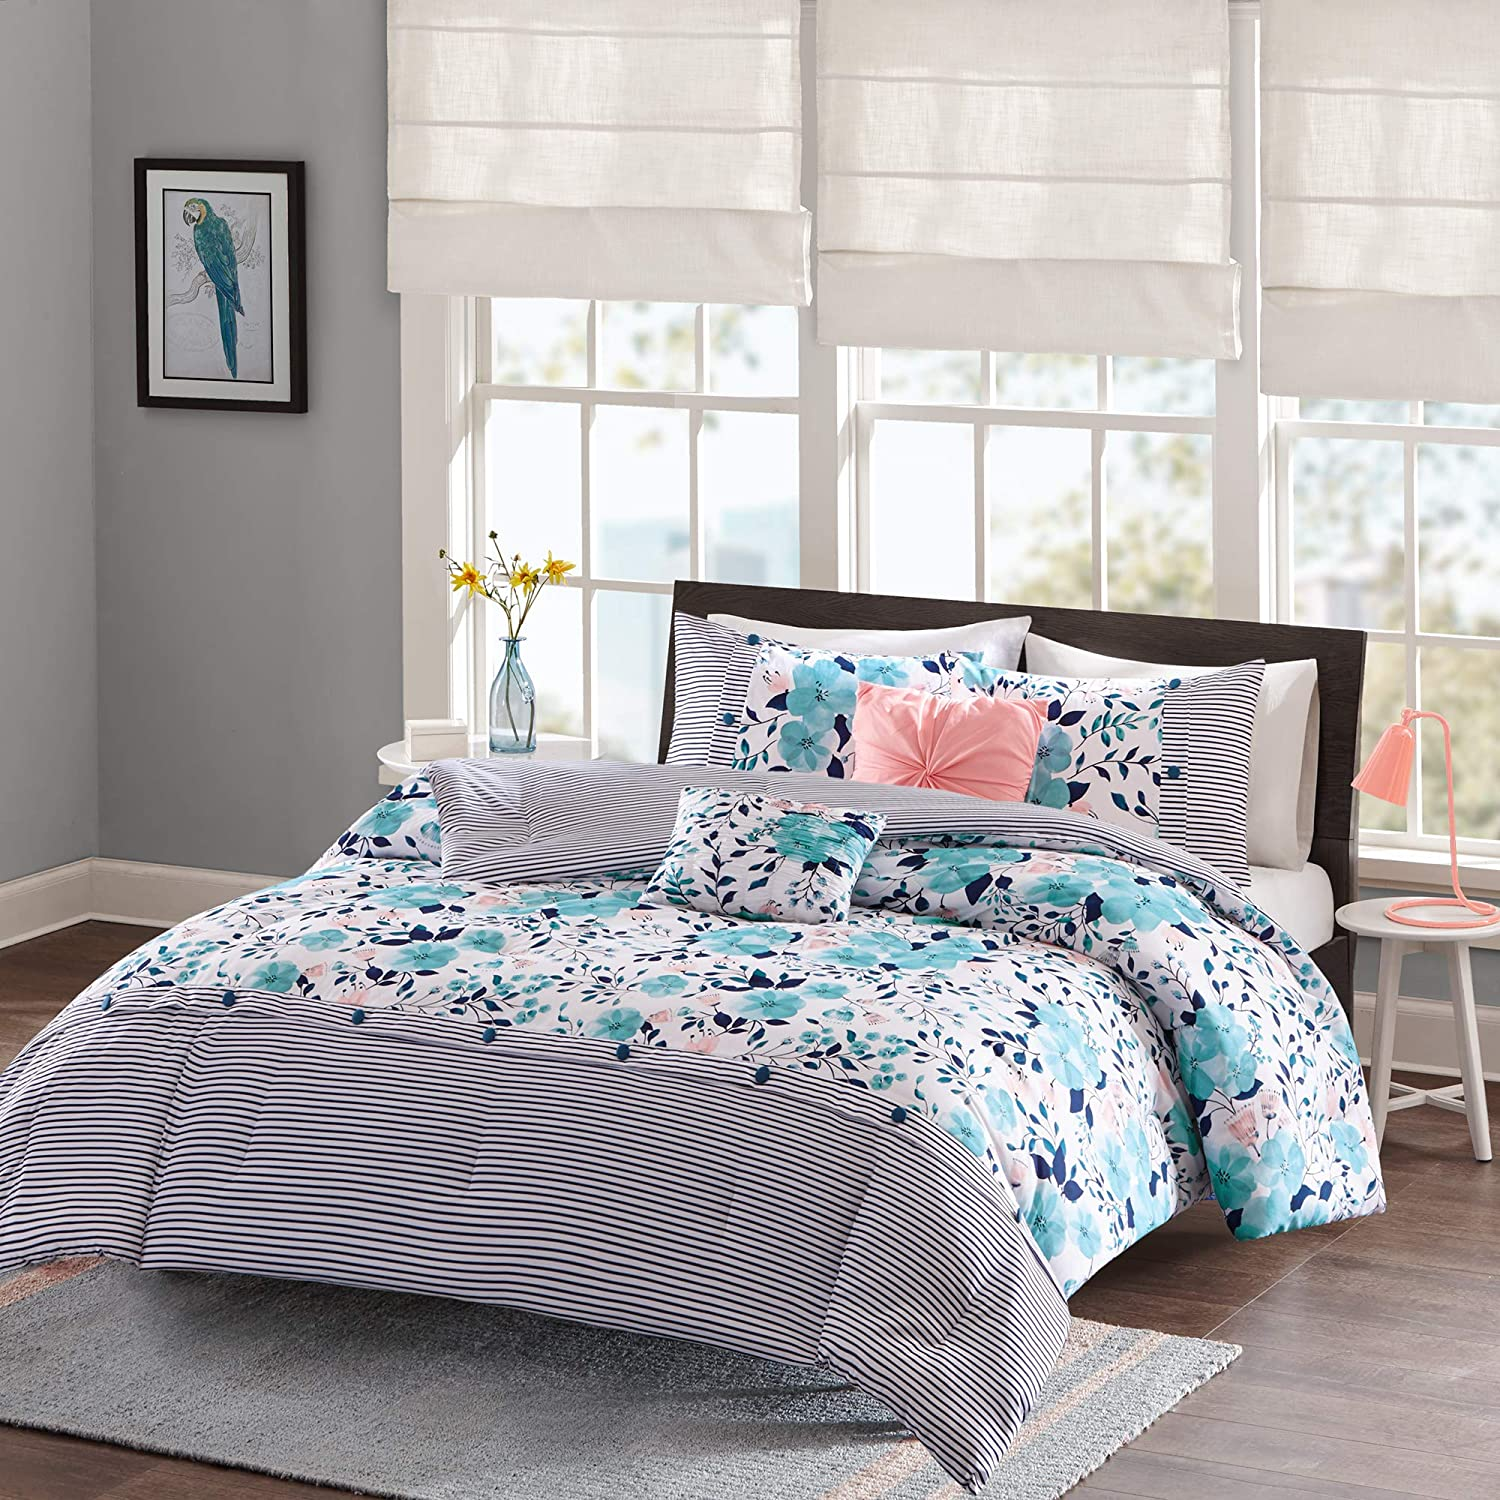 Amazon Com Intelligent Design Delle Comforter Set Full Queen Size Blue Floral Stripes 5 Piece Bed Sets Ultra Soft Microfiber Teen Bedding For Girls Bedroom Home Kitchen